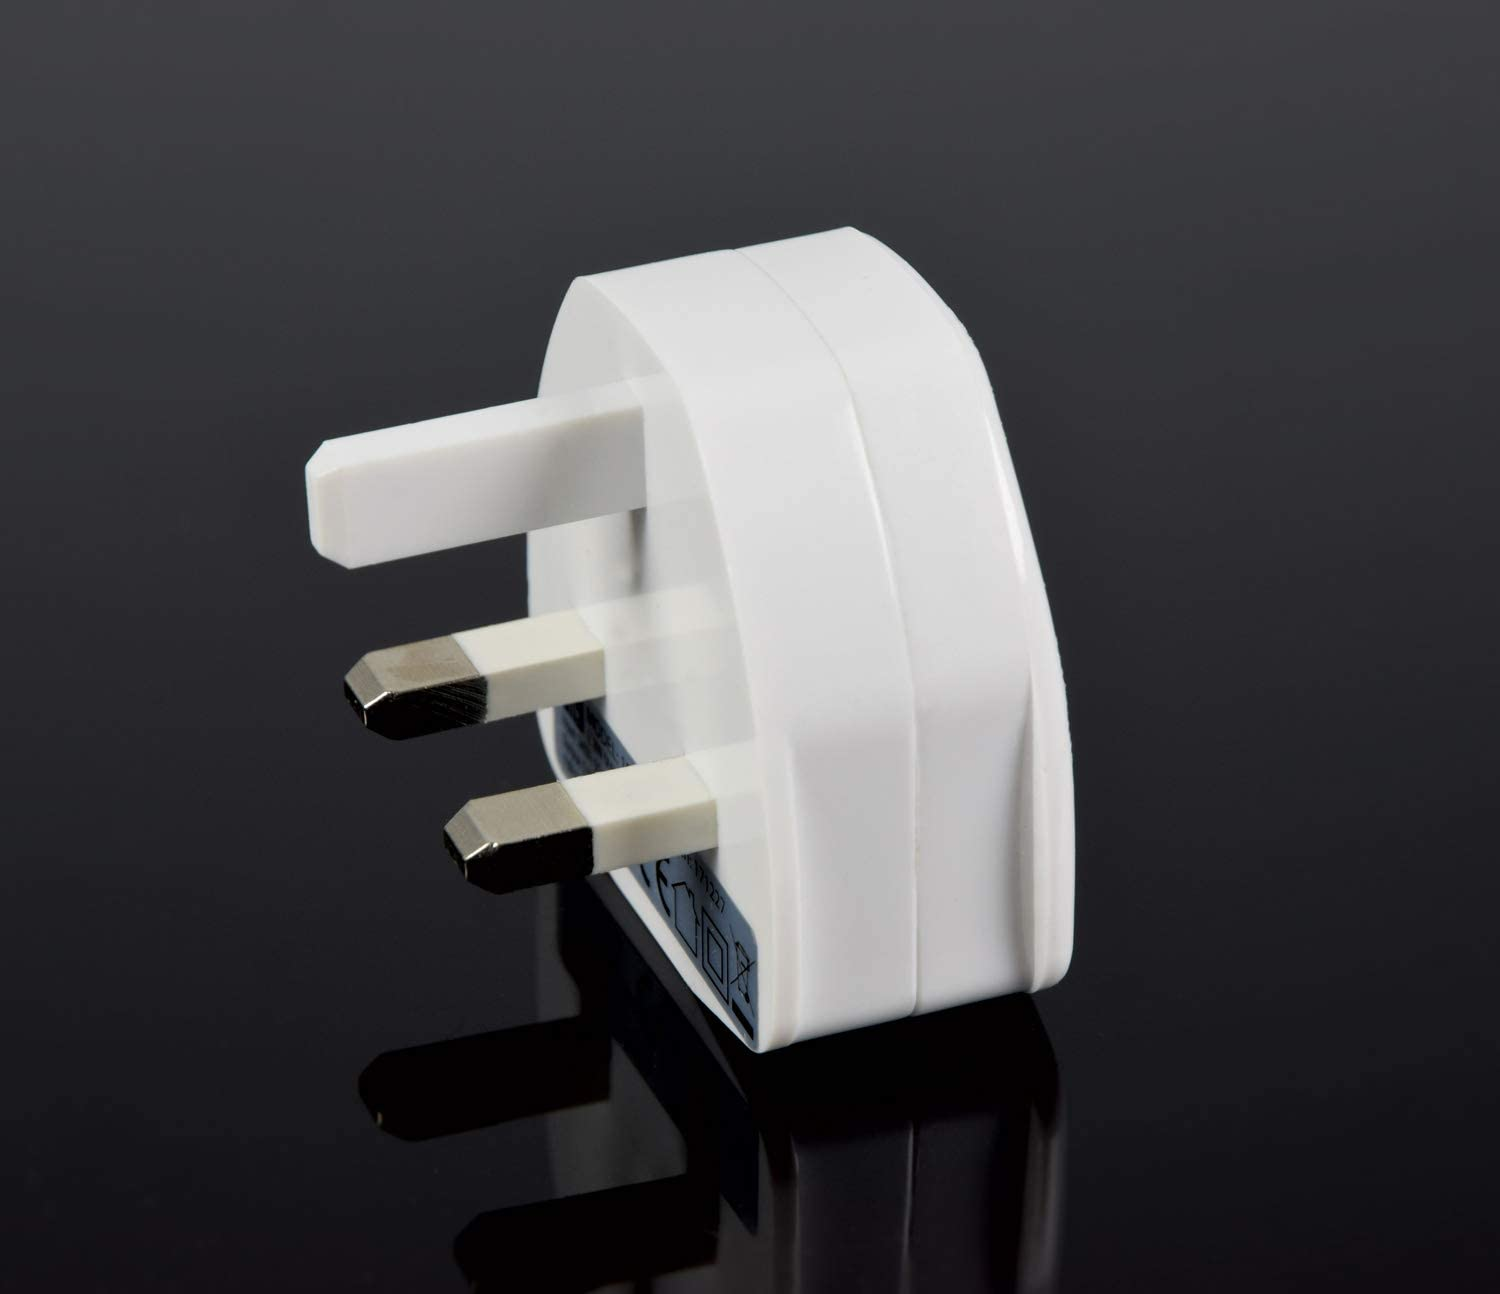 Mercury Quick Charge USB Mains Charging Plug Upto 4 x Faster Charging With Smart IC Technology